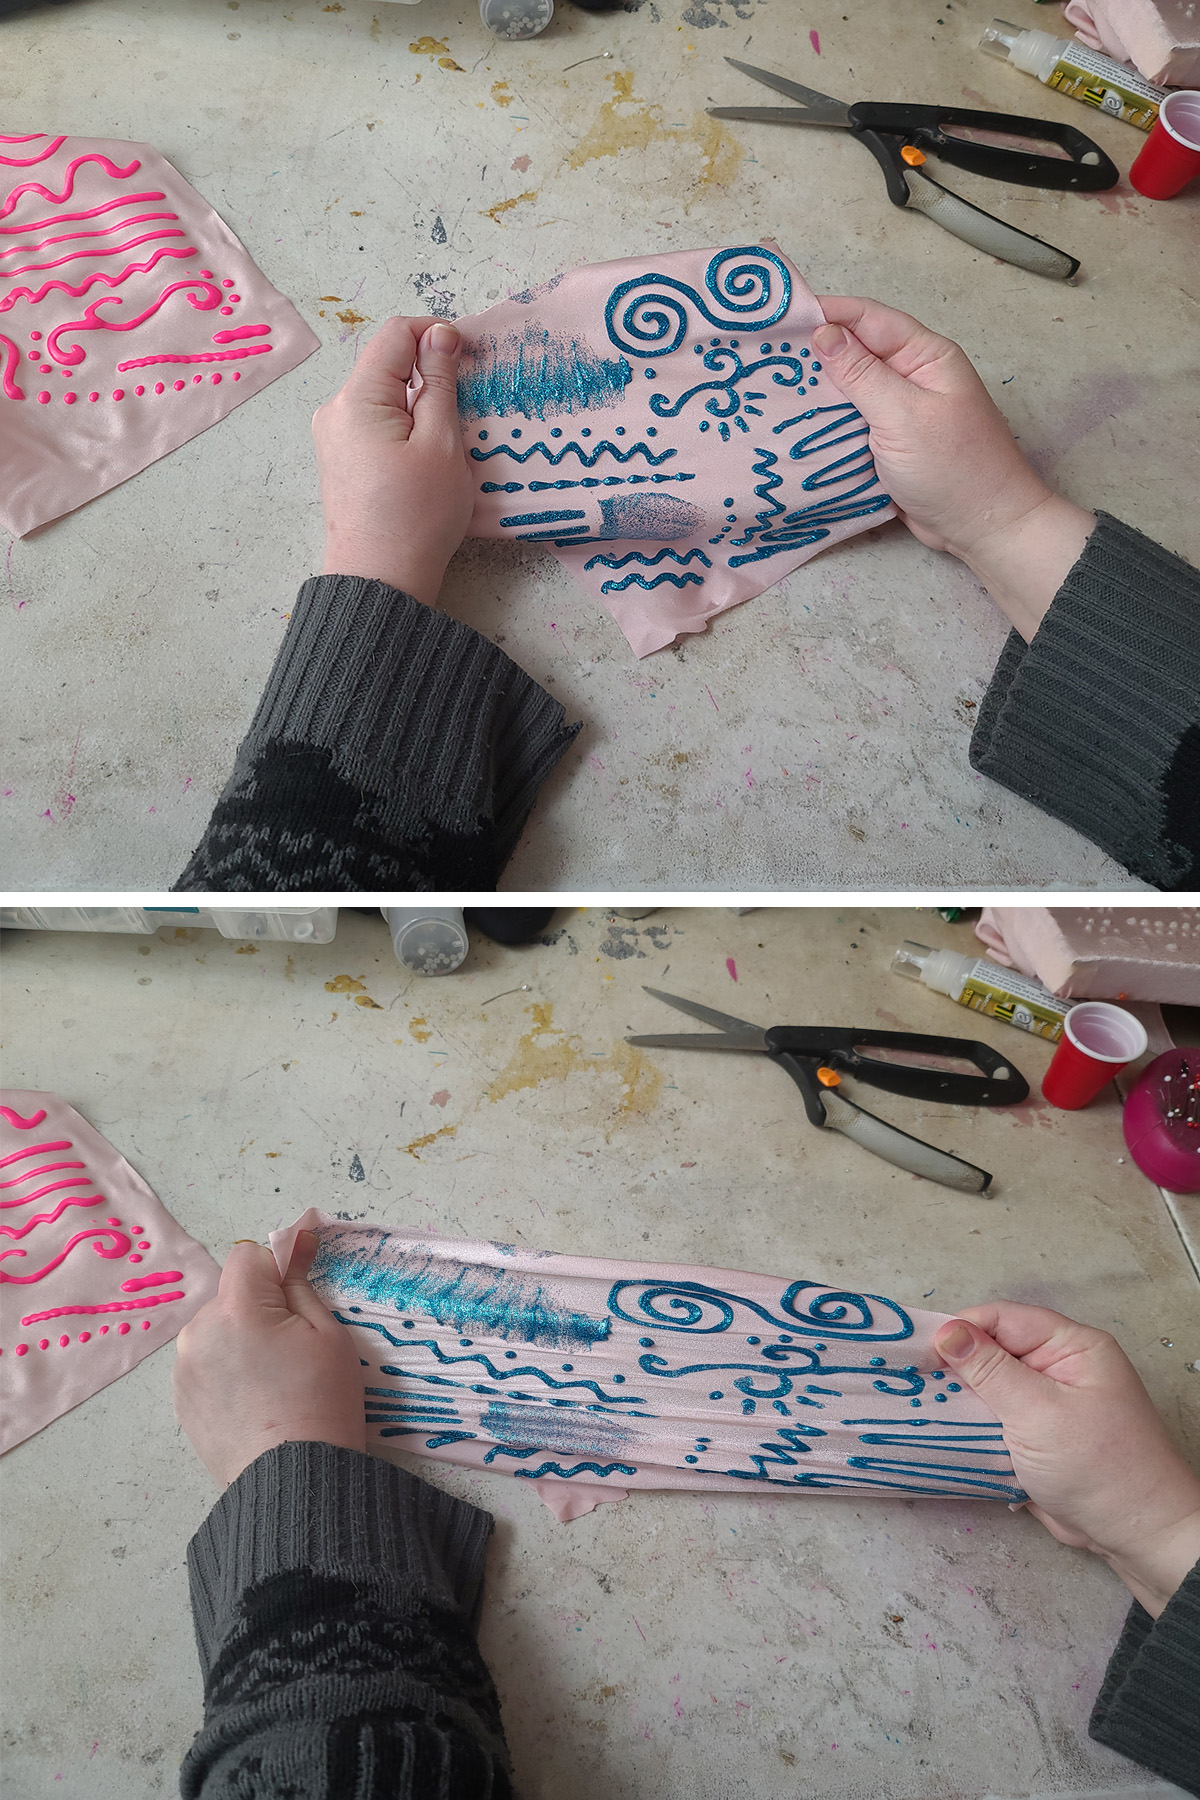 A two-part compilation image showing two hands holding a piece of light pink spandex with blue glitter paint swirls on it. The top image shows it relaxed, the second image shows the fabric being stretched to its limit.